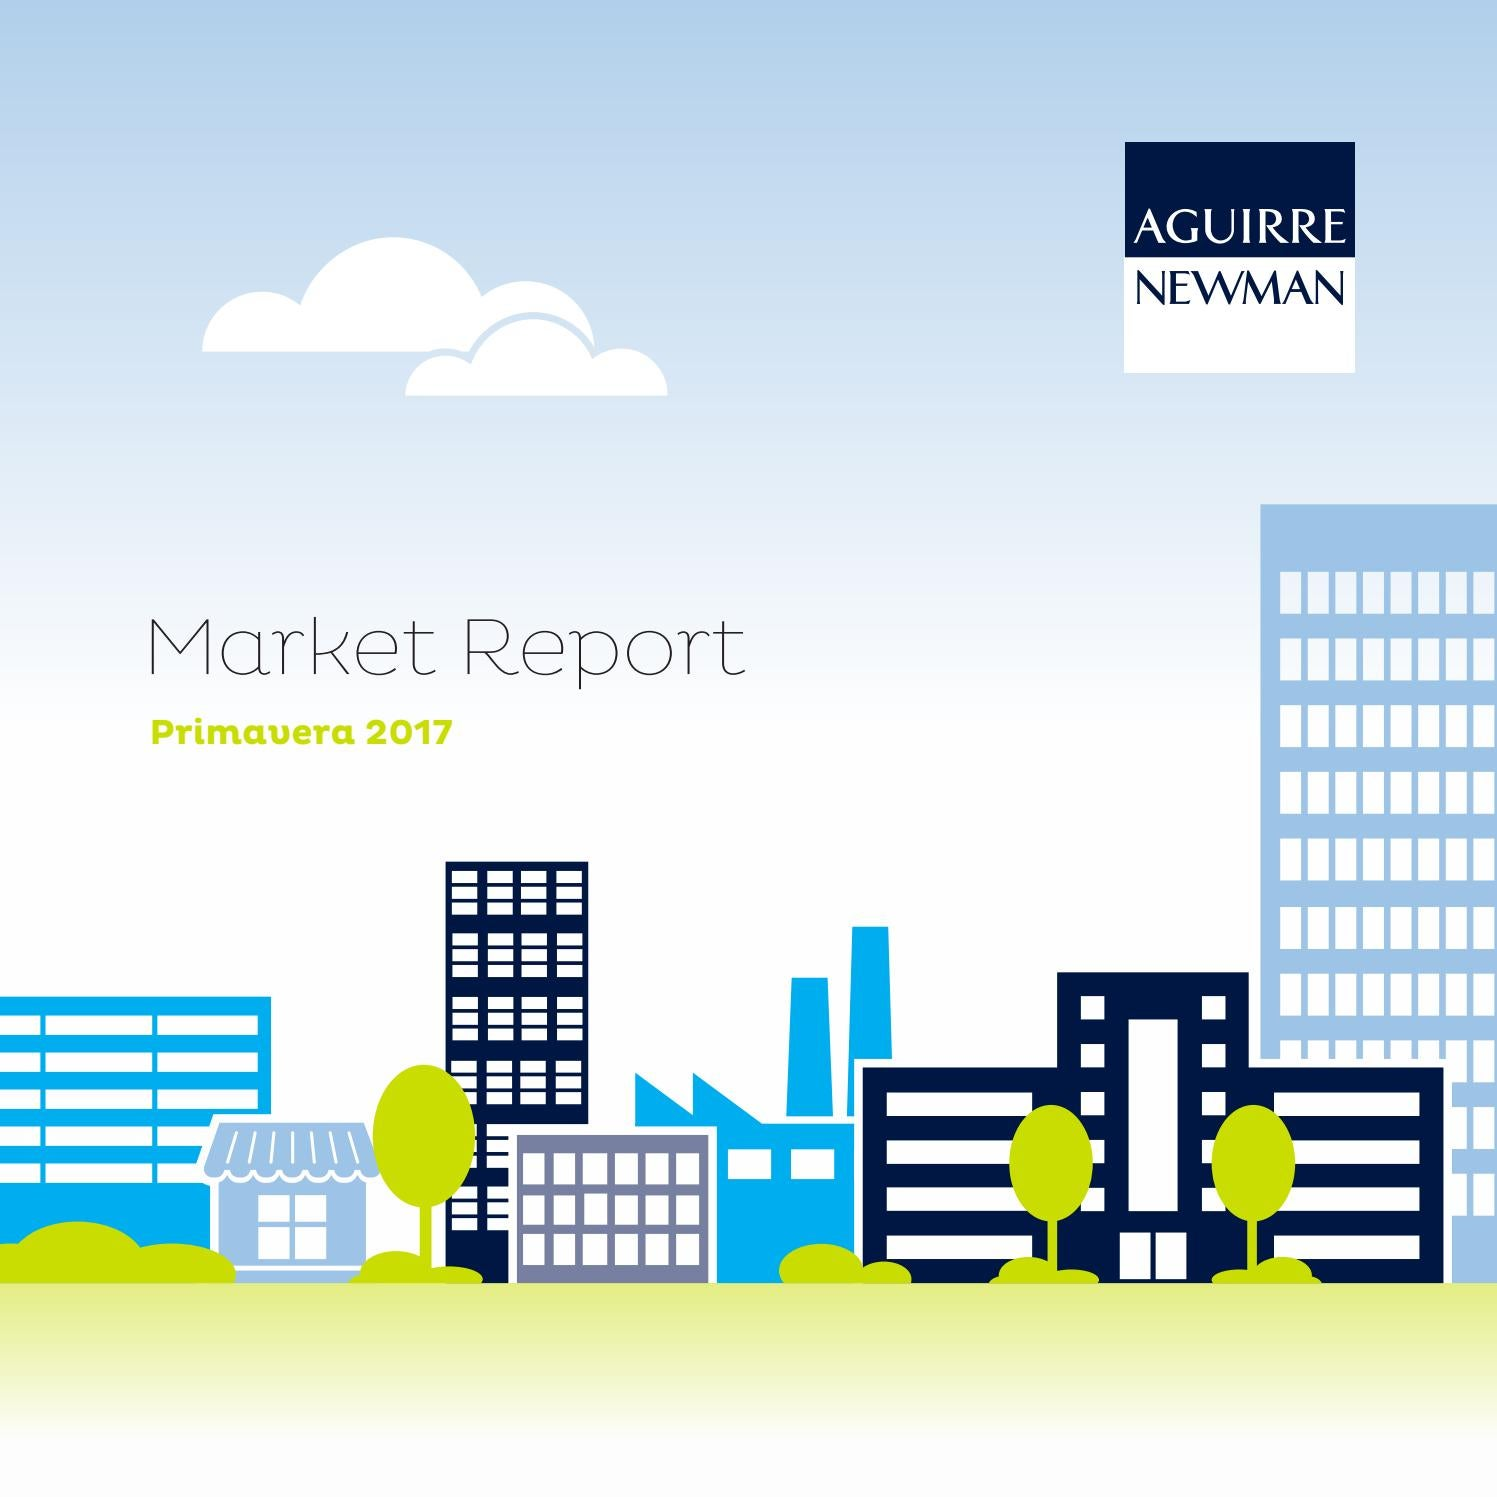 market report primavera by aguirre newman portugal issuu